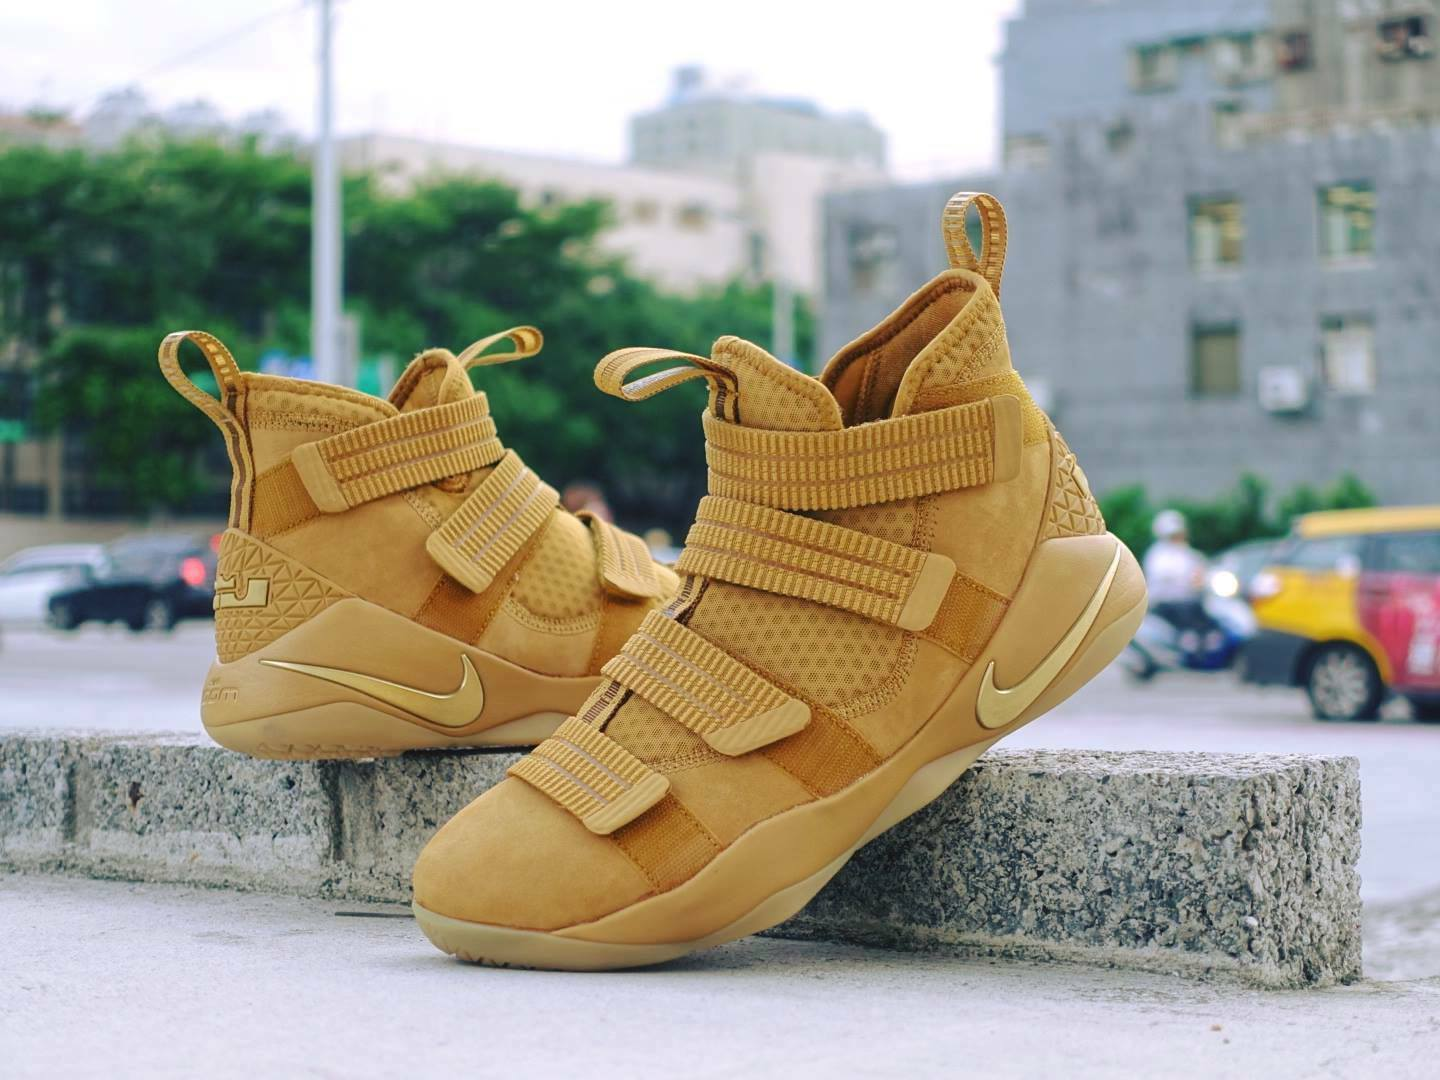 ef7af693fa83 Nike Lebron Soldier XI SFG EP 11 James Wheat Gold Men Basketball 897647-700